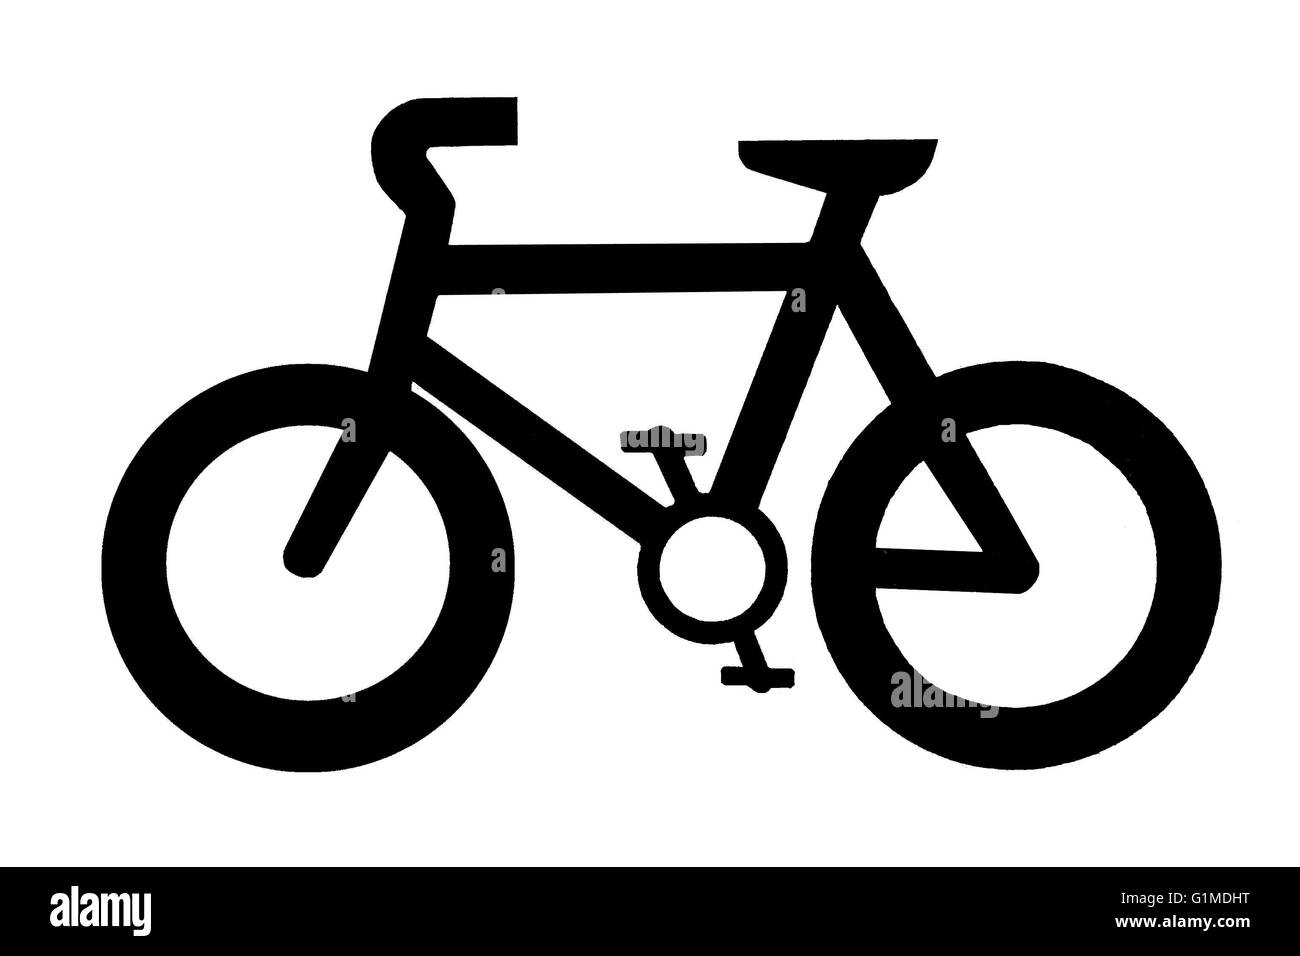 Isolated silhouette of a bicycle for signs or information Stock Photo